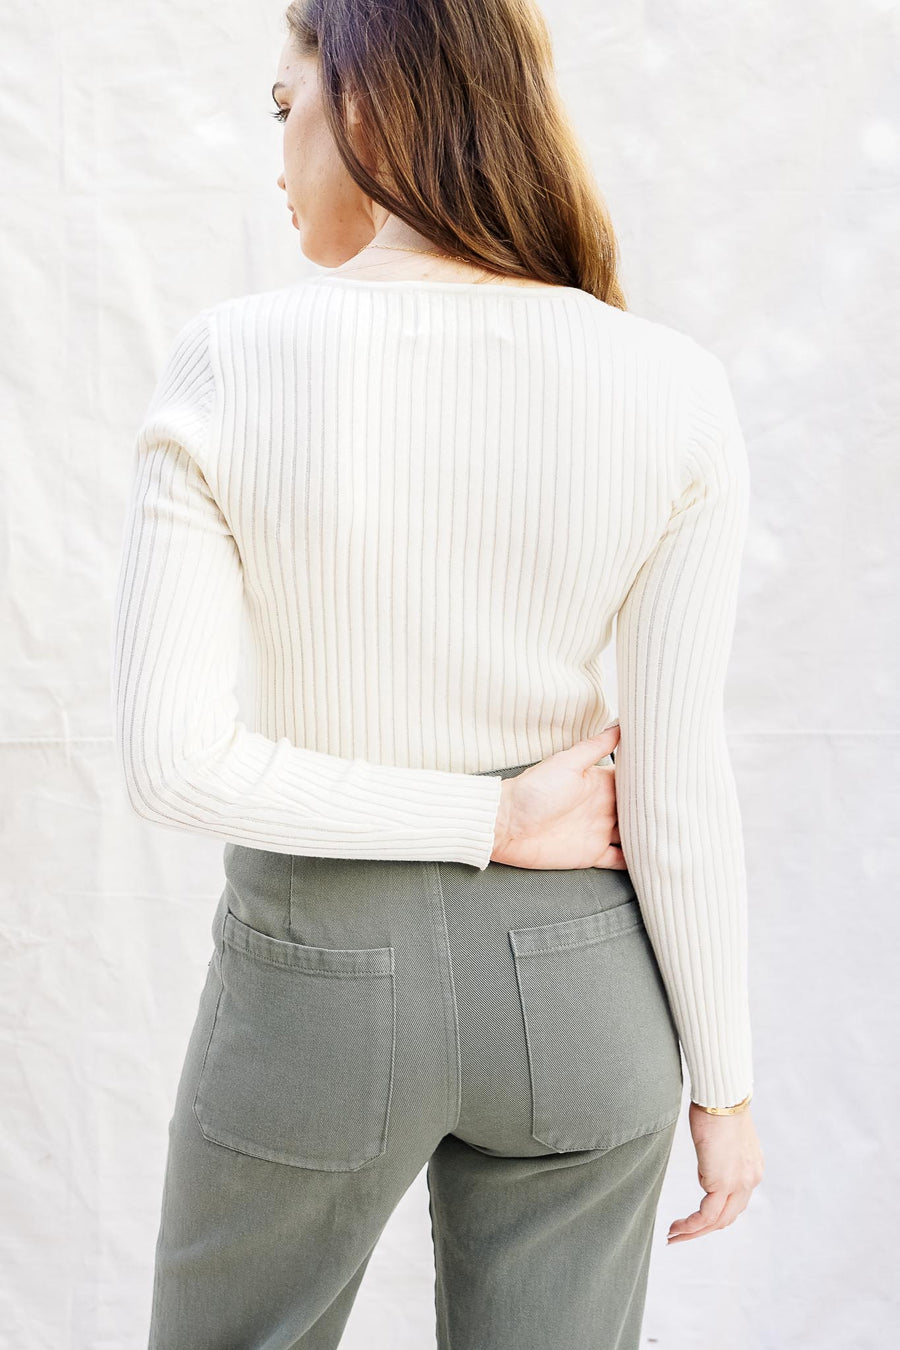 Classic Rib Sweater - The Canyon